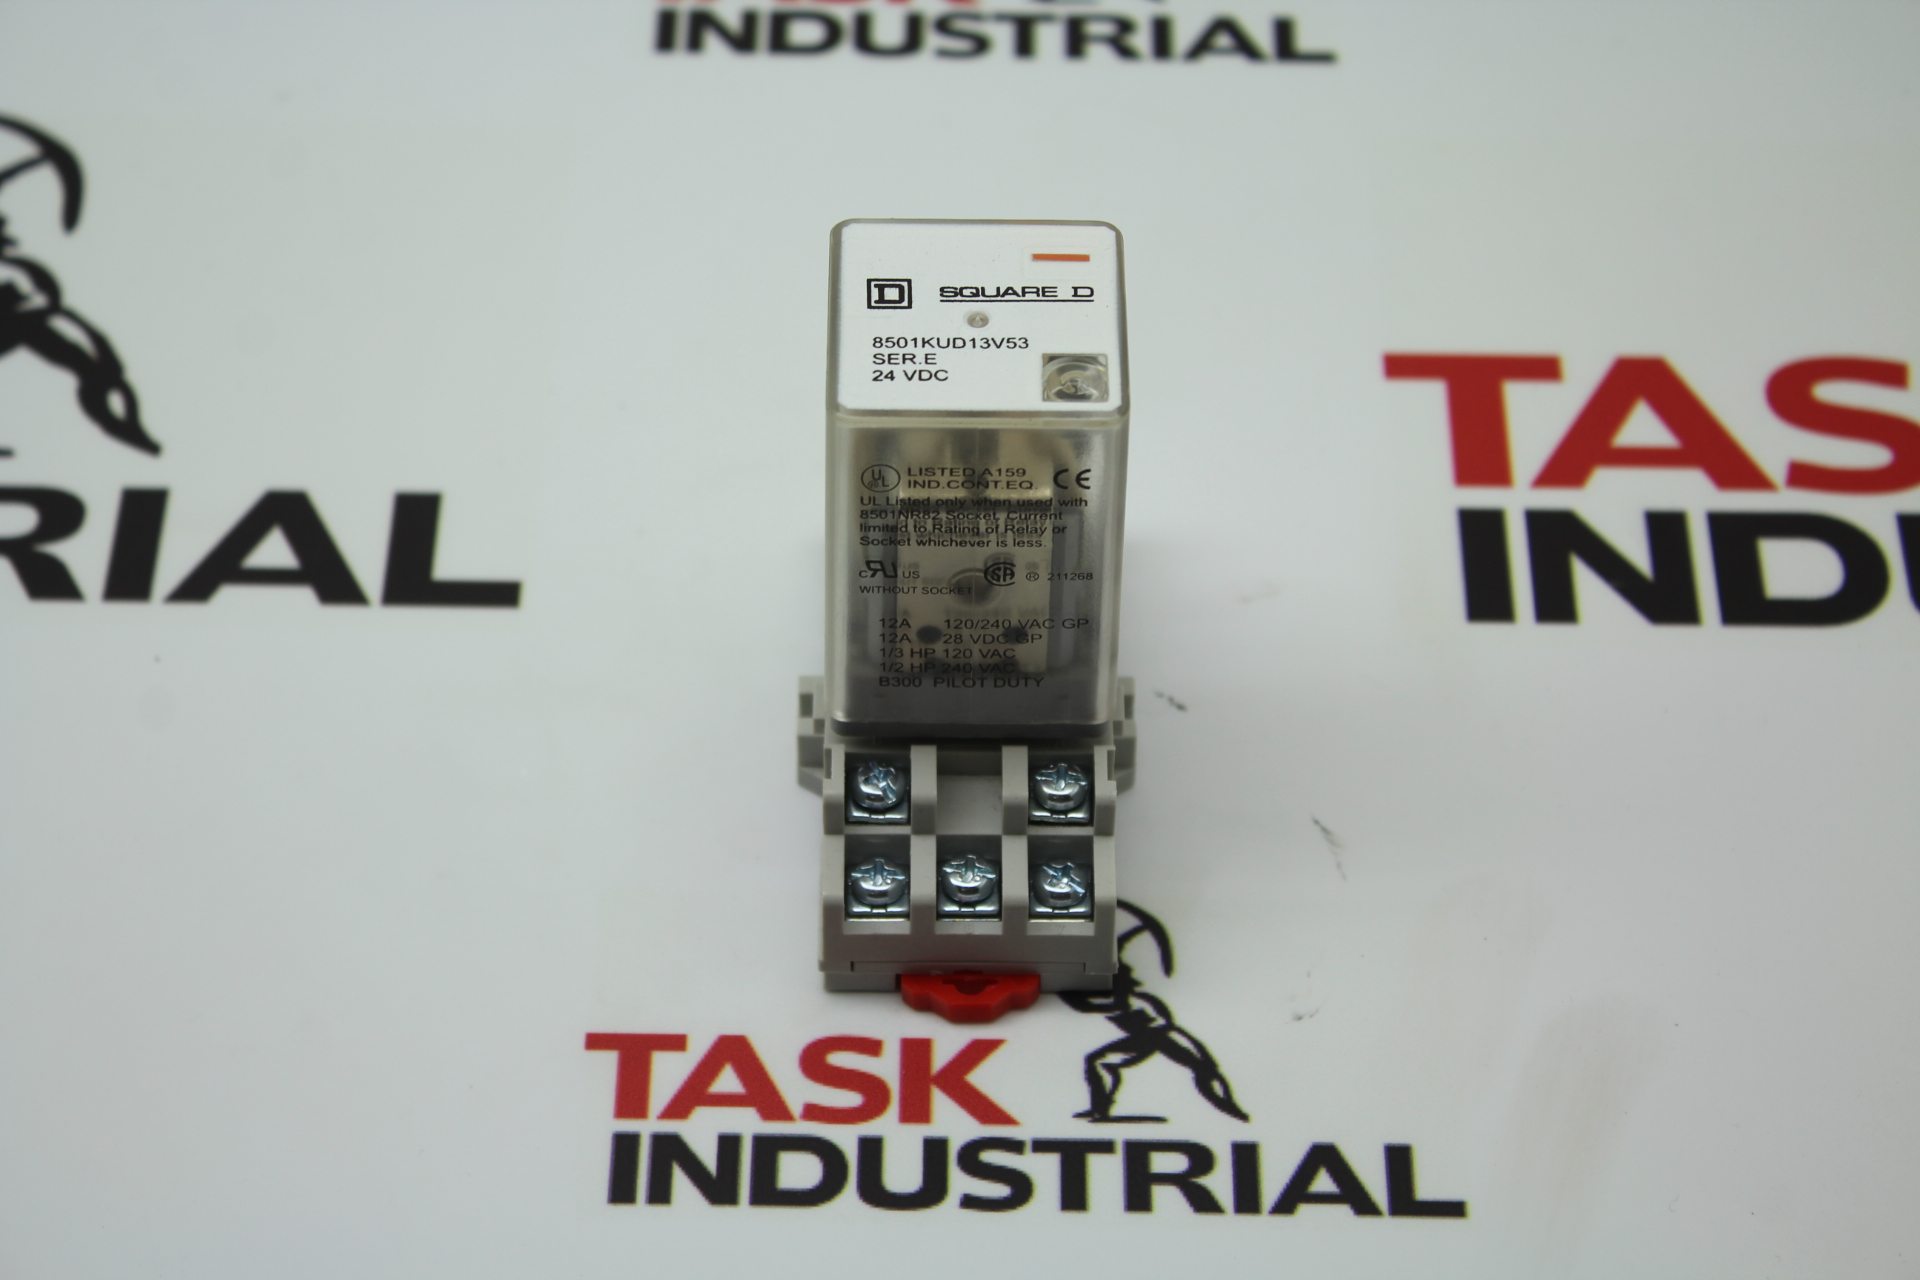 Square D 8501KUD13V53 Relay w/base